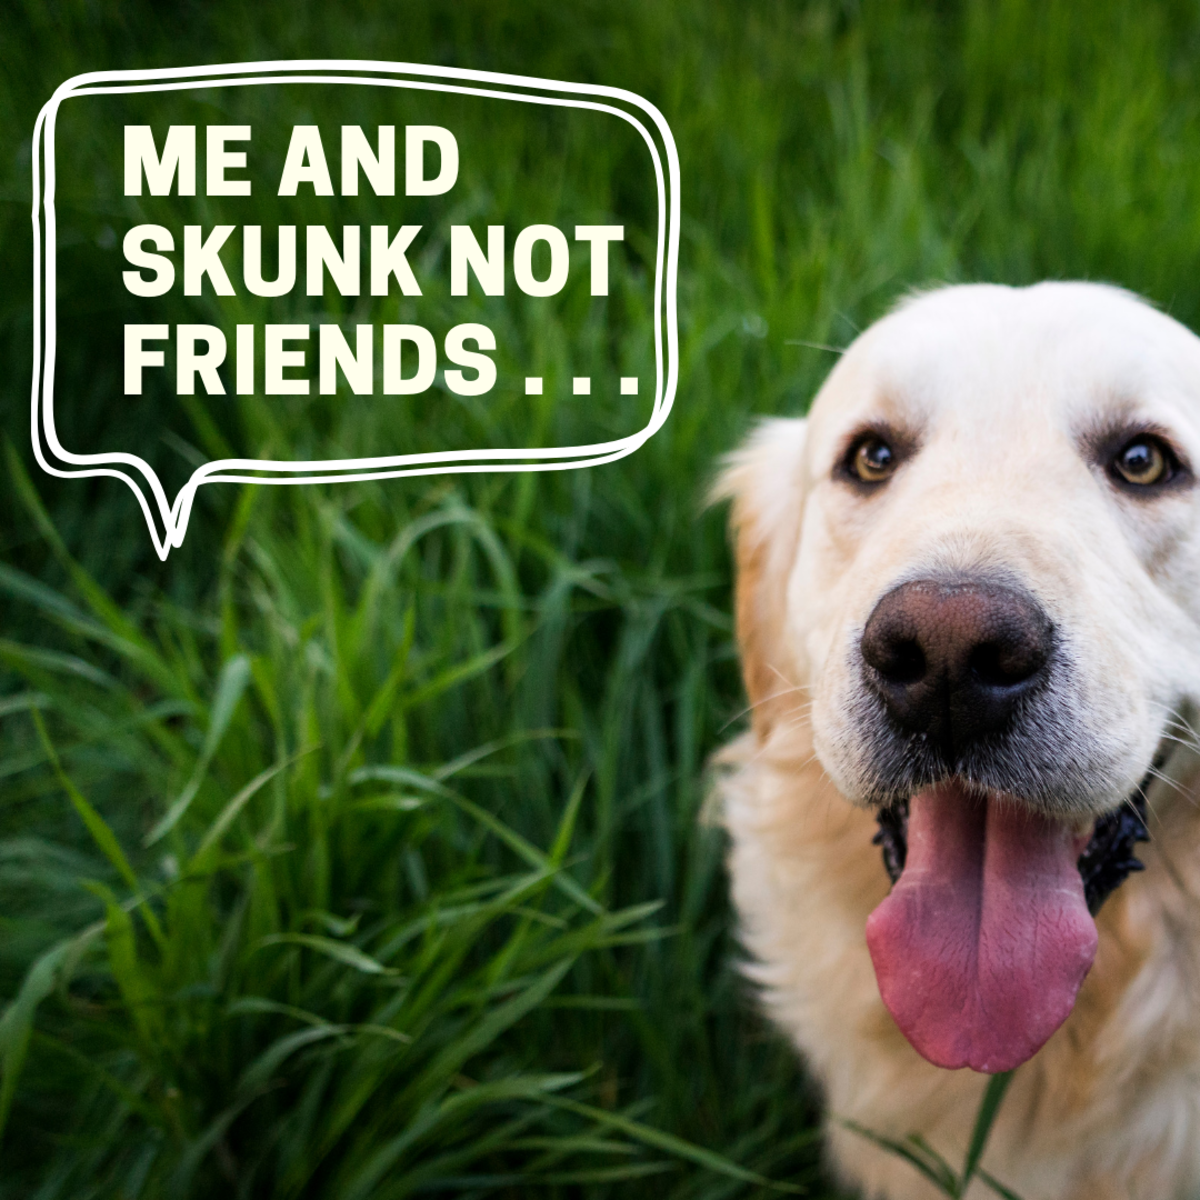 Does Tomato Juice Get Rid of Skunk Smell on Dogs? | PetHelpful